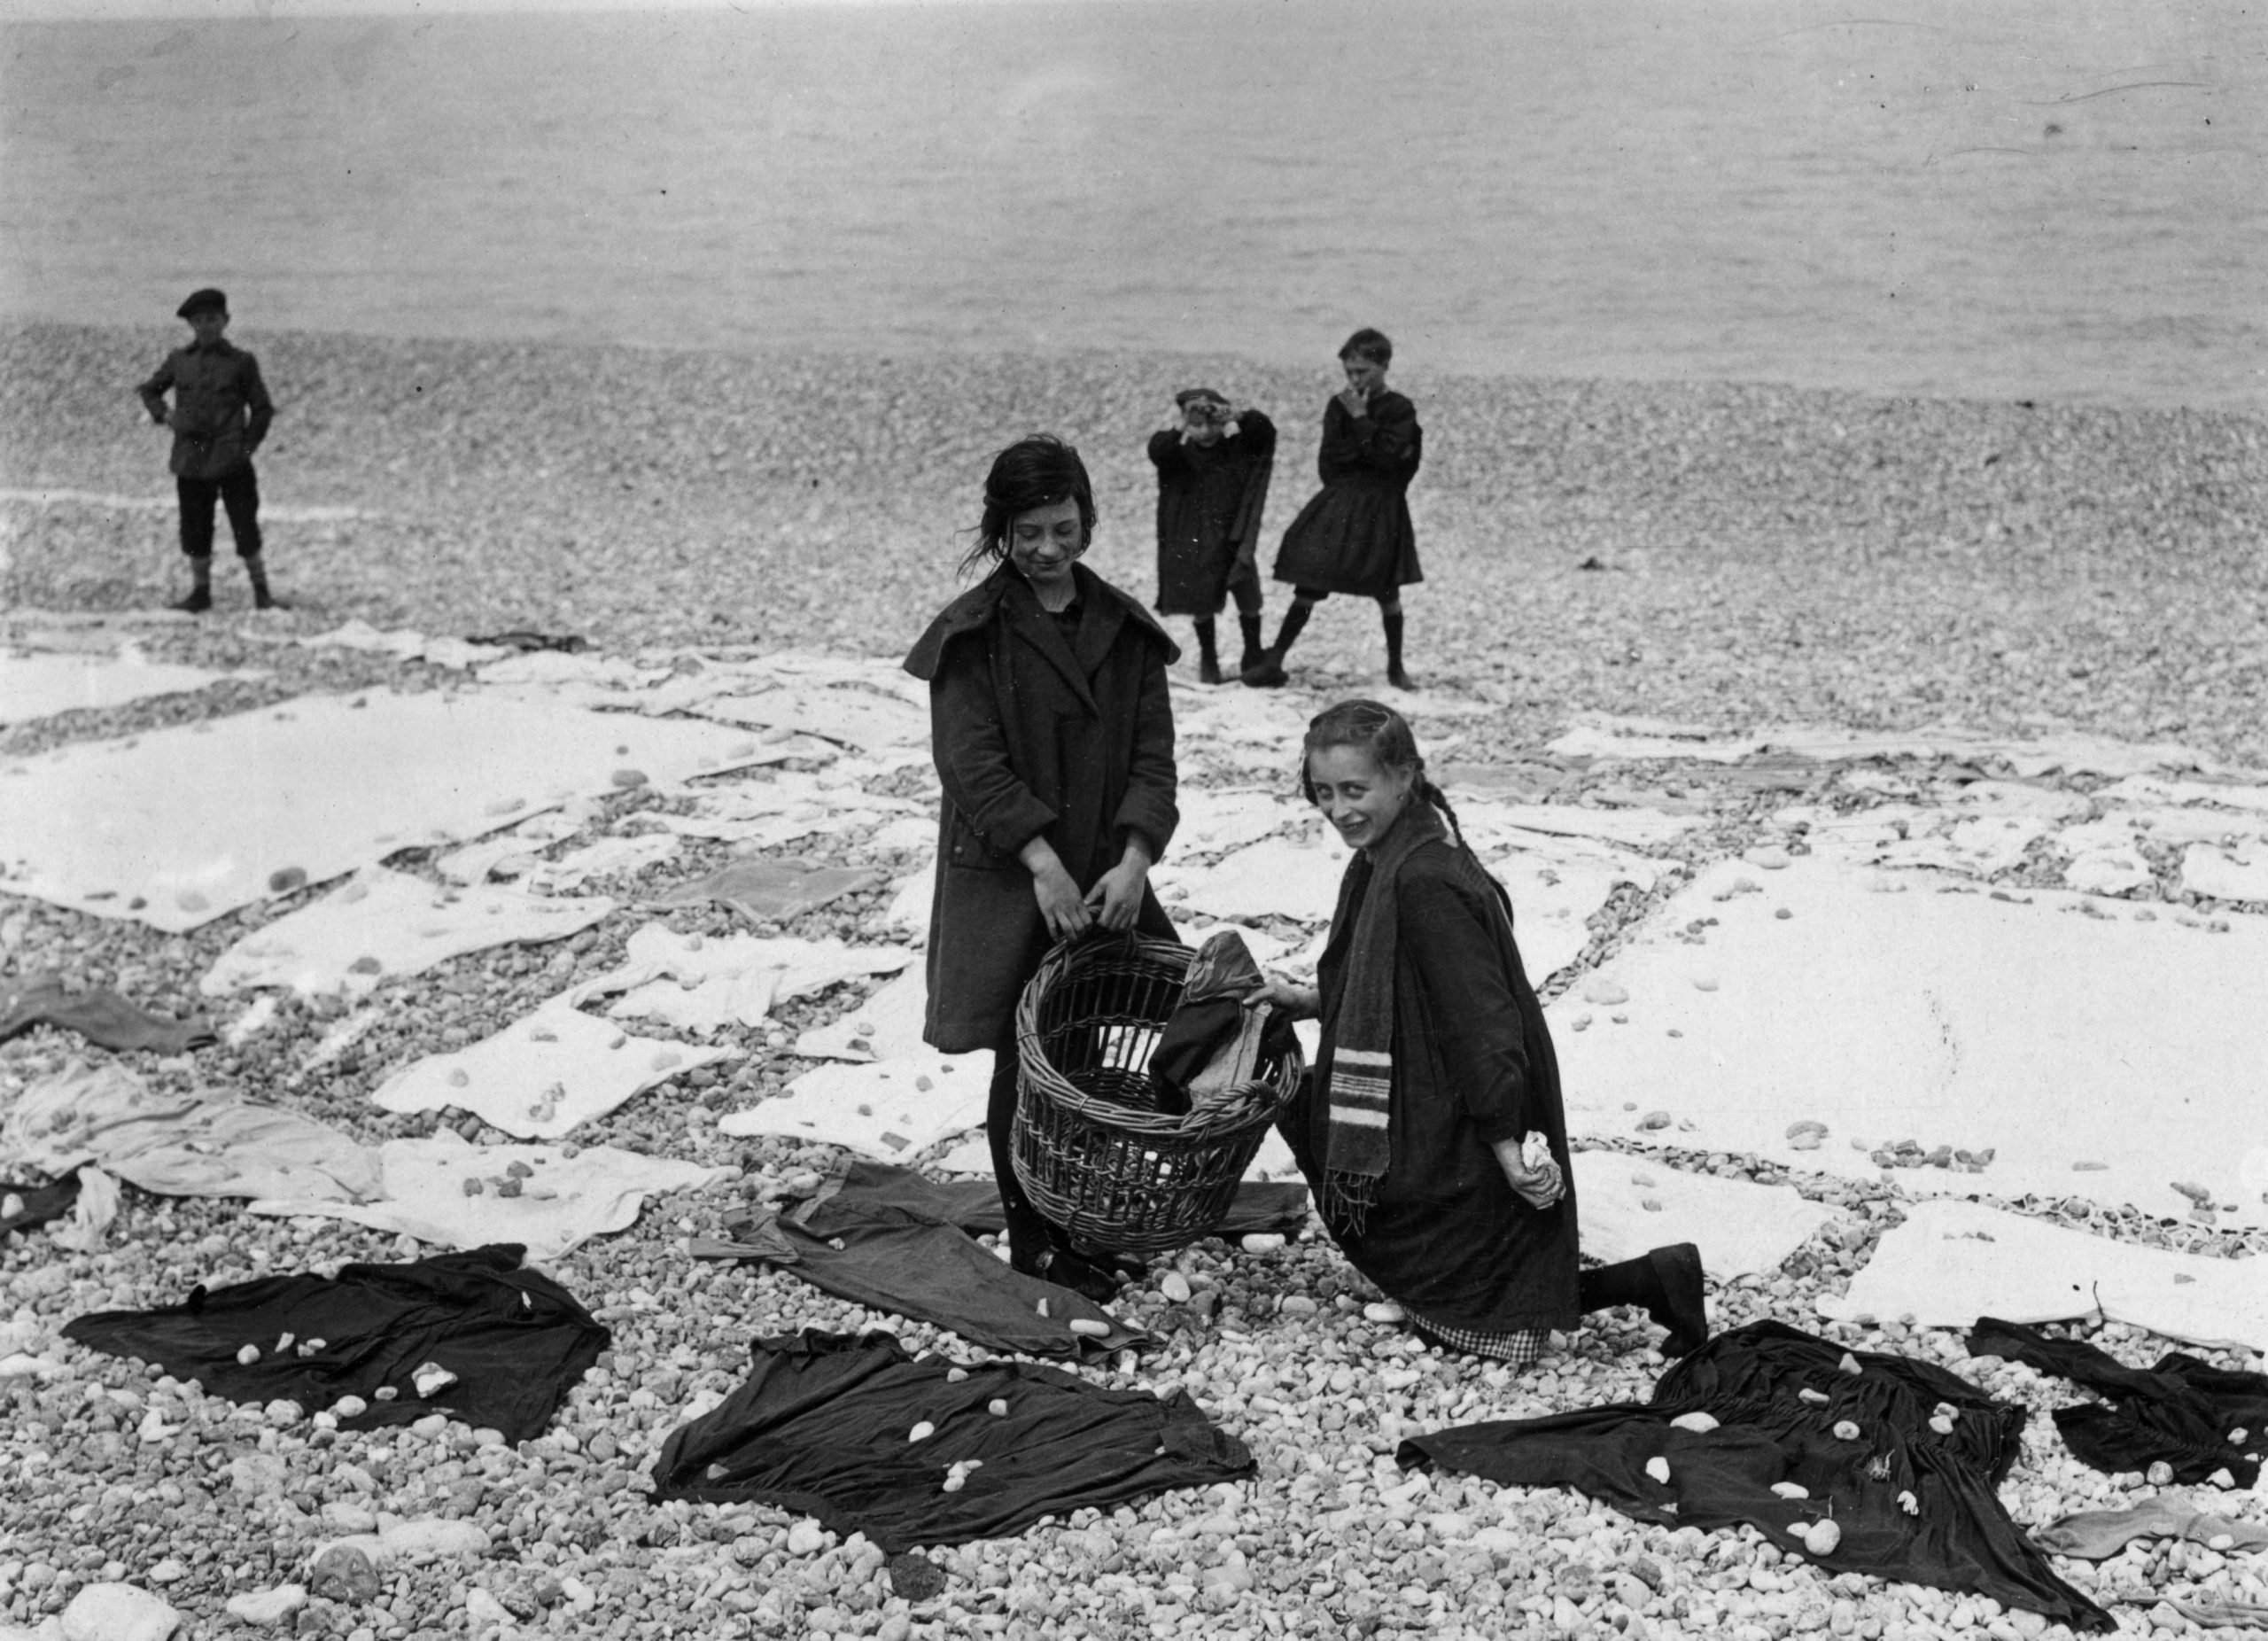 Girls weigh down clothes with pebbles at the beach on washing day